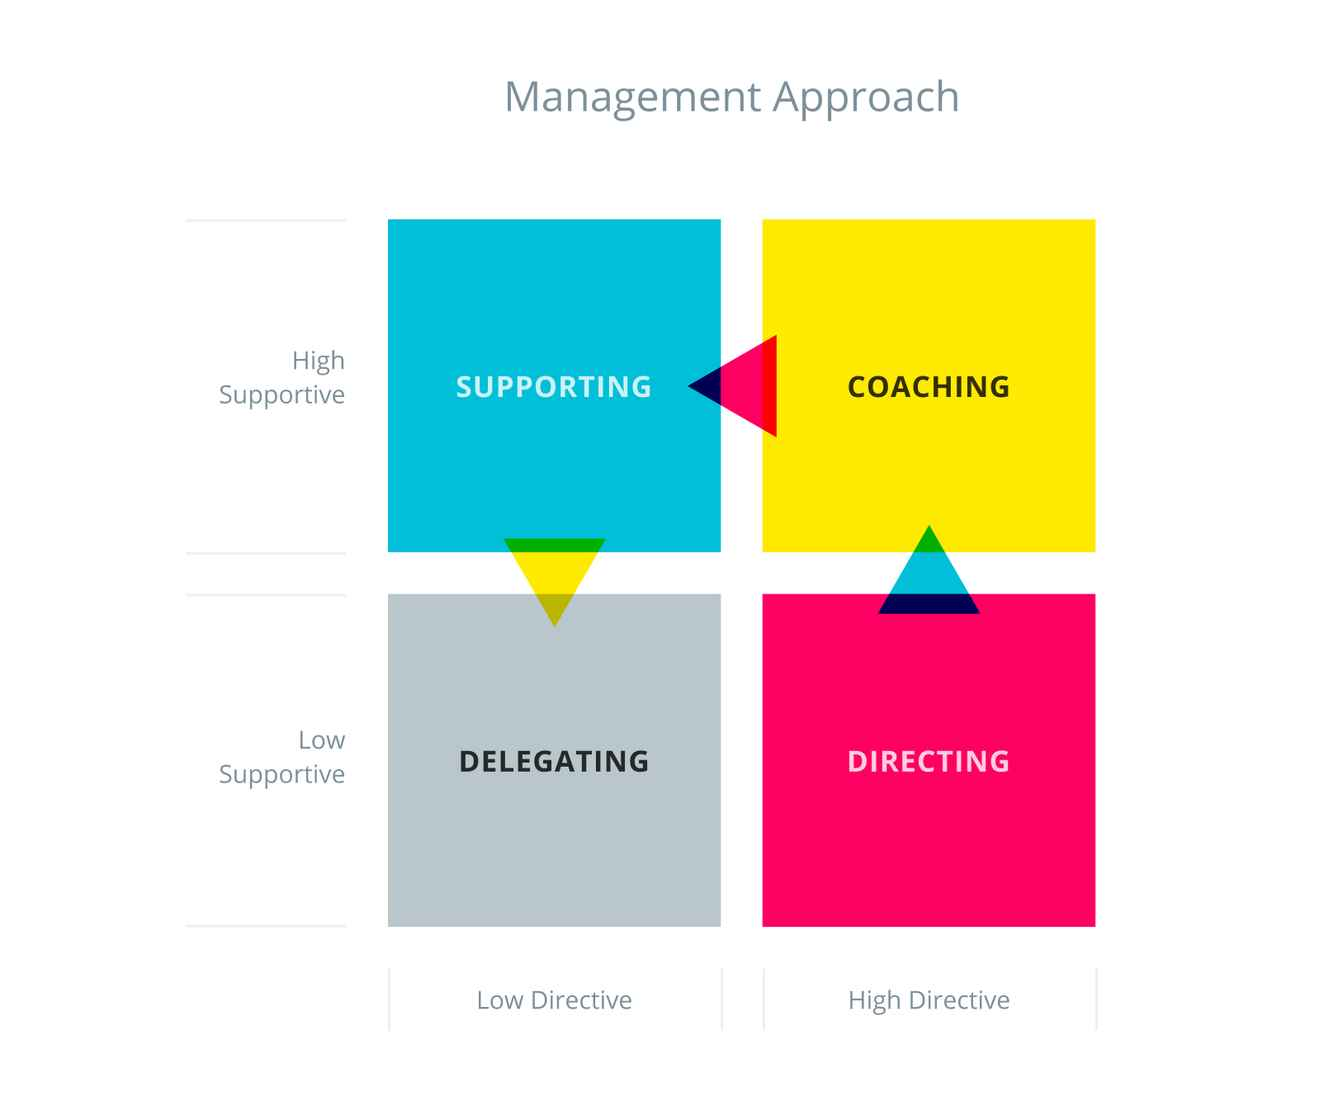 Management approach chart.